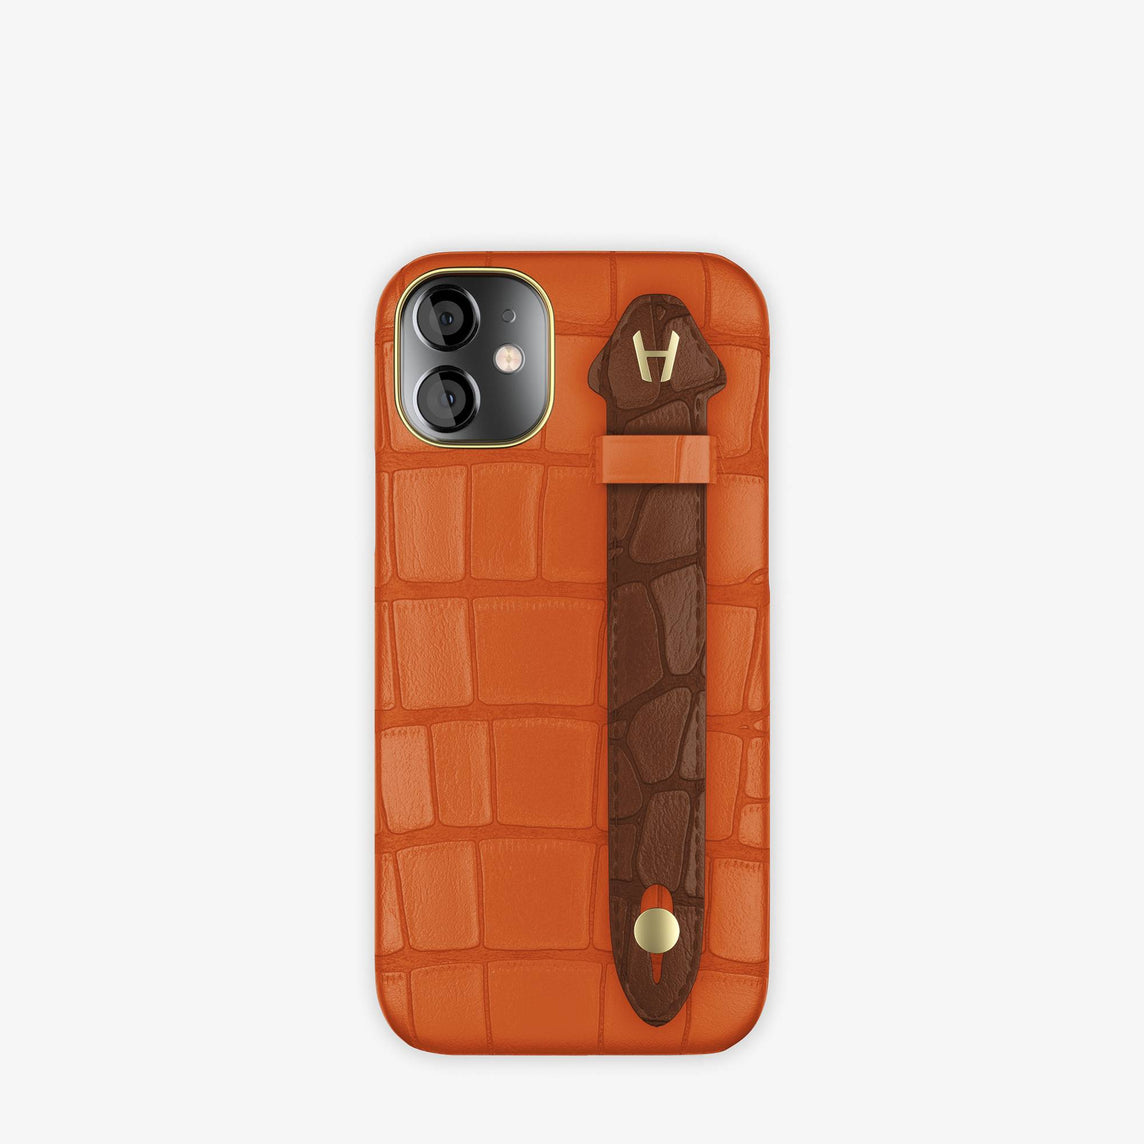 Alligator Side Finger Case iPhone 12 Mini | Orange Sunset/Brown Chocolat -Yellow Gold